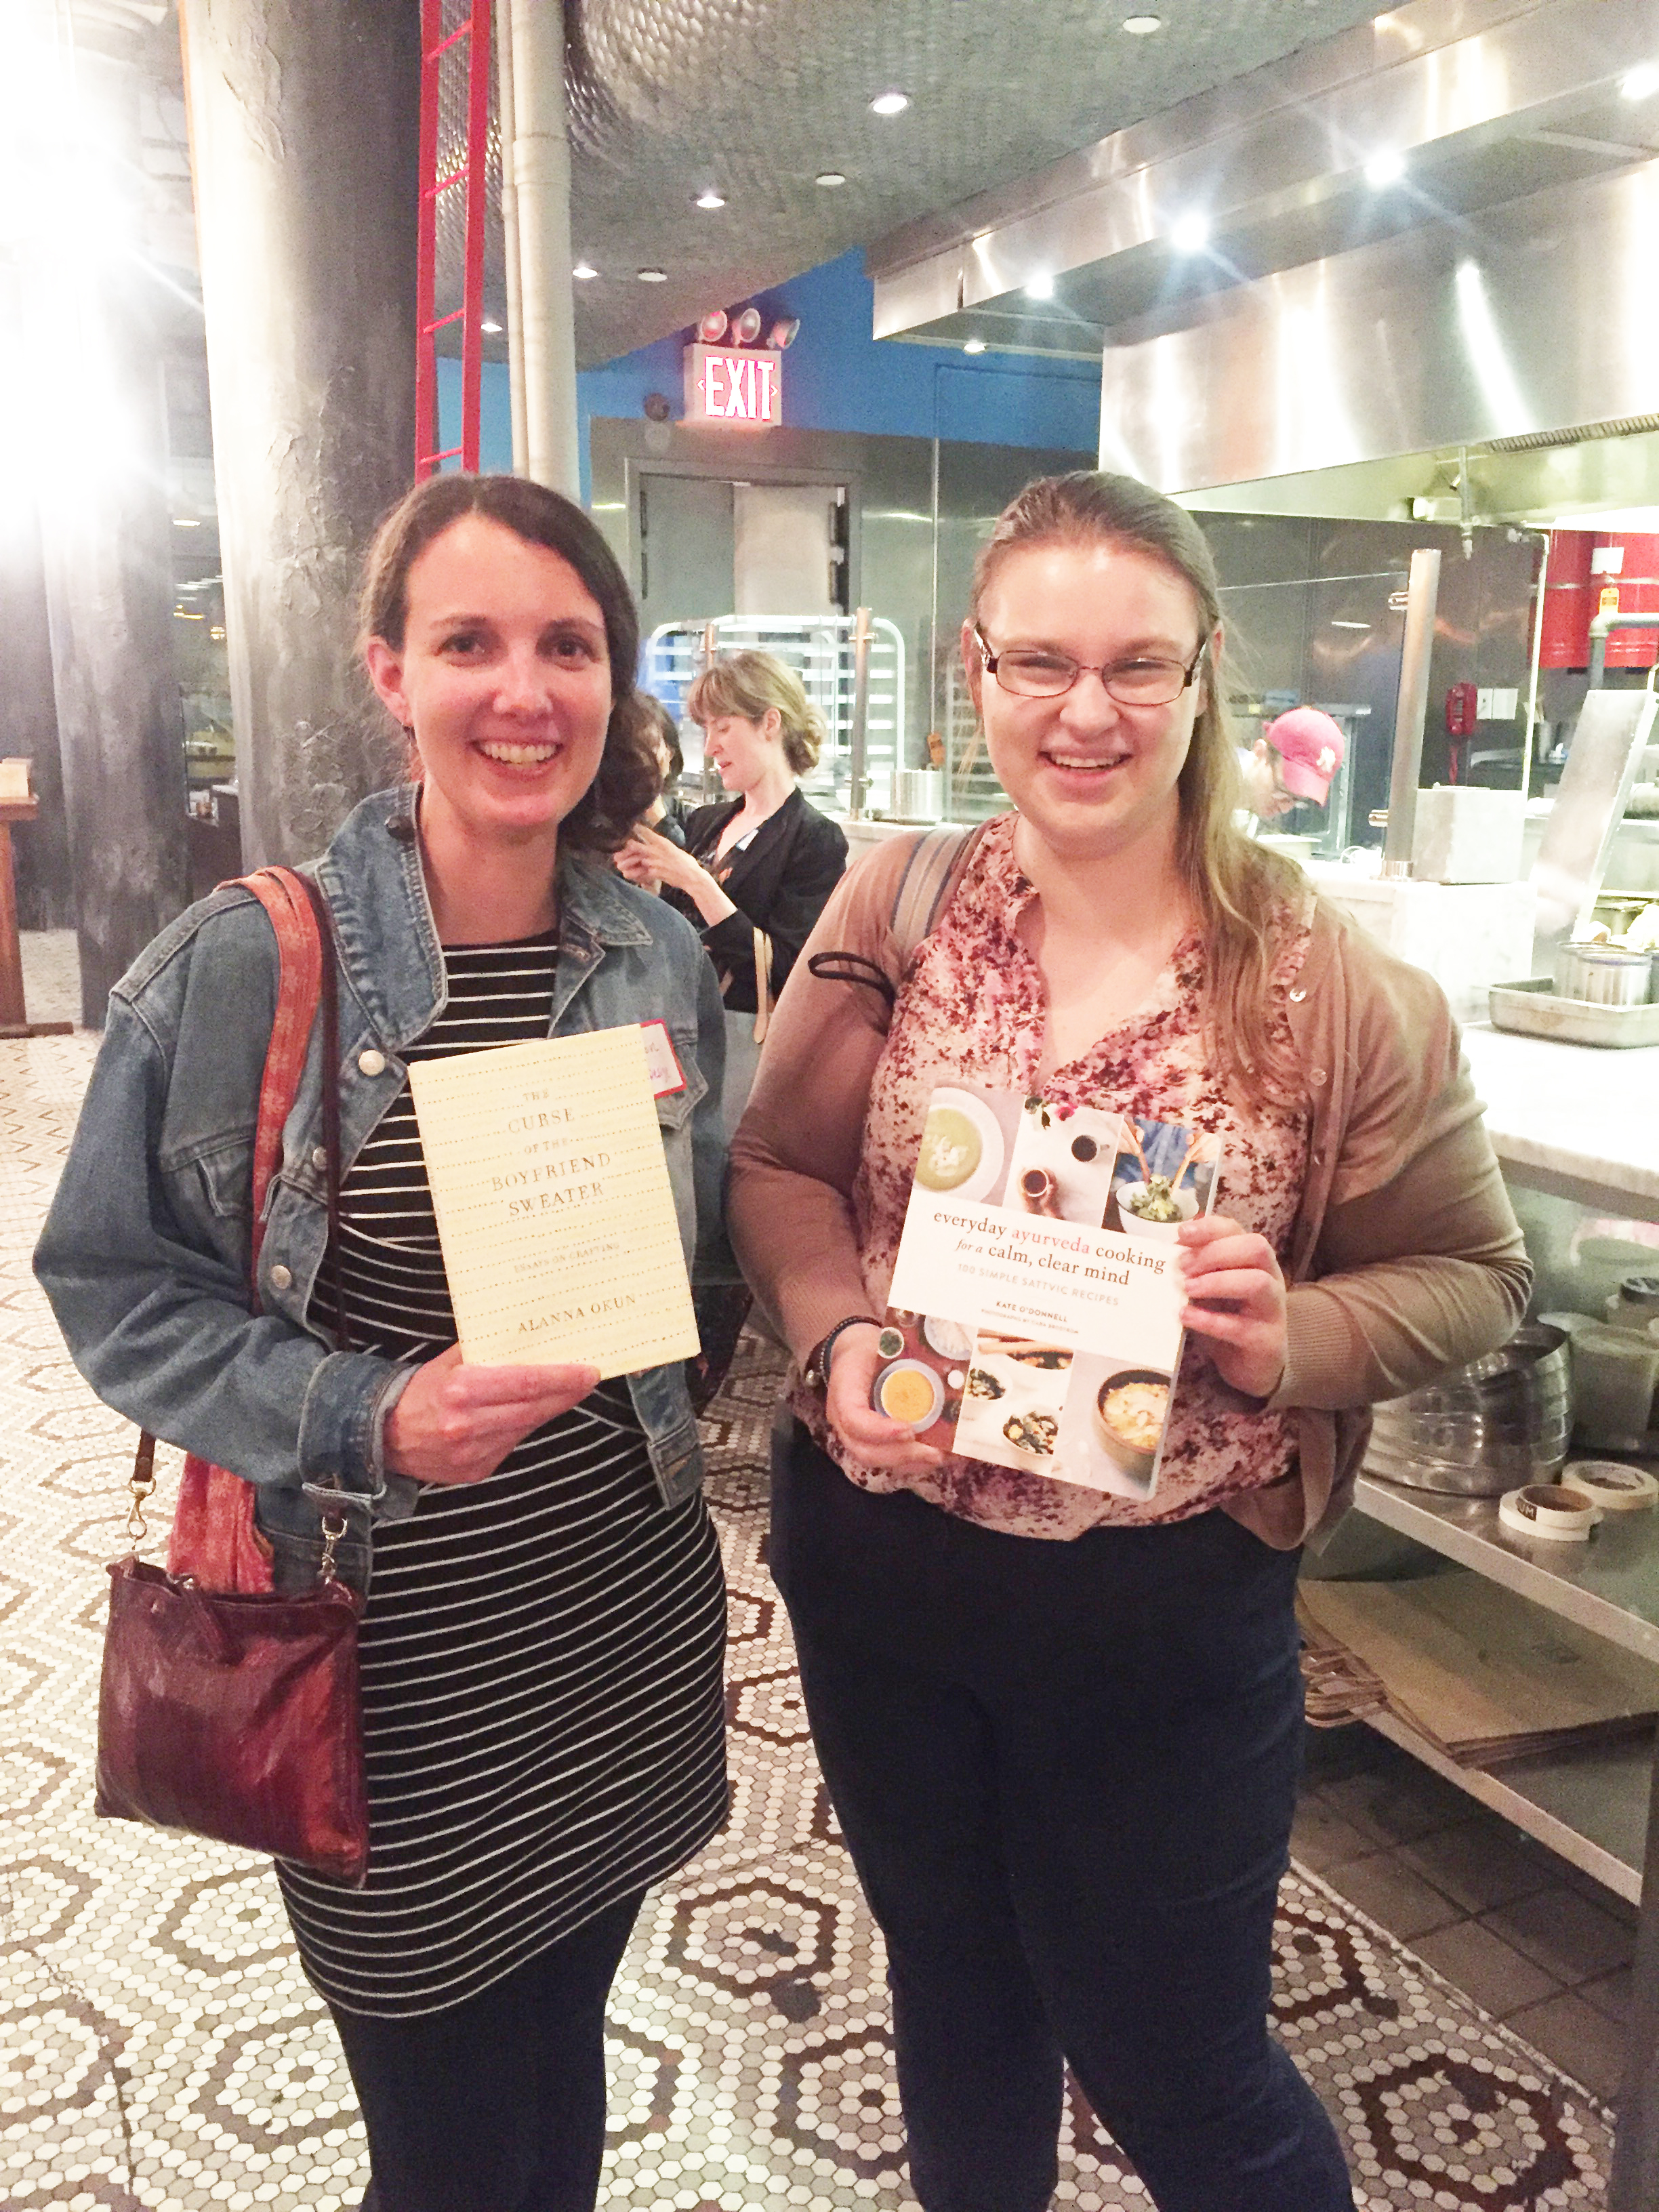 IMG_0283_she_designs_books_after_bookswap_cara_meets_kelly_29.jpg